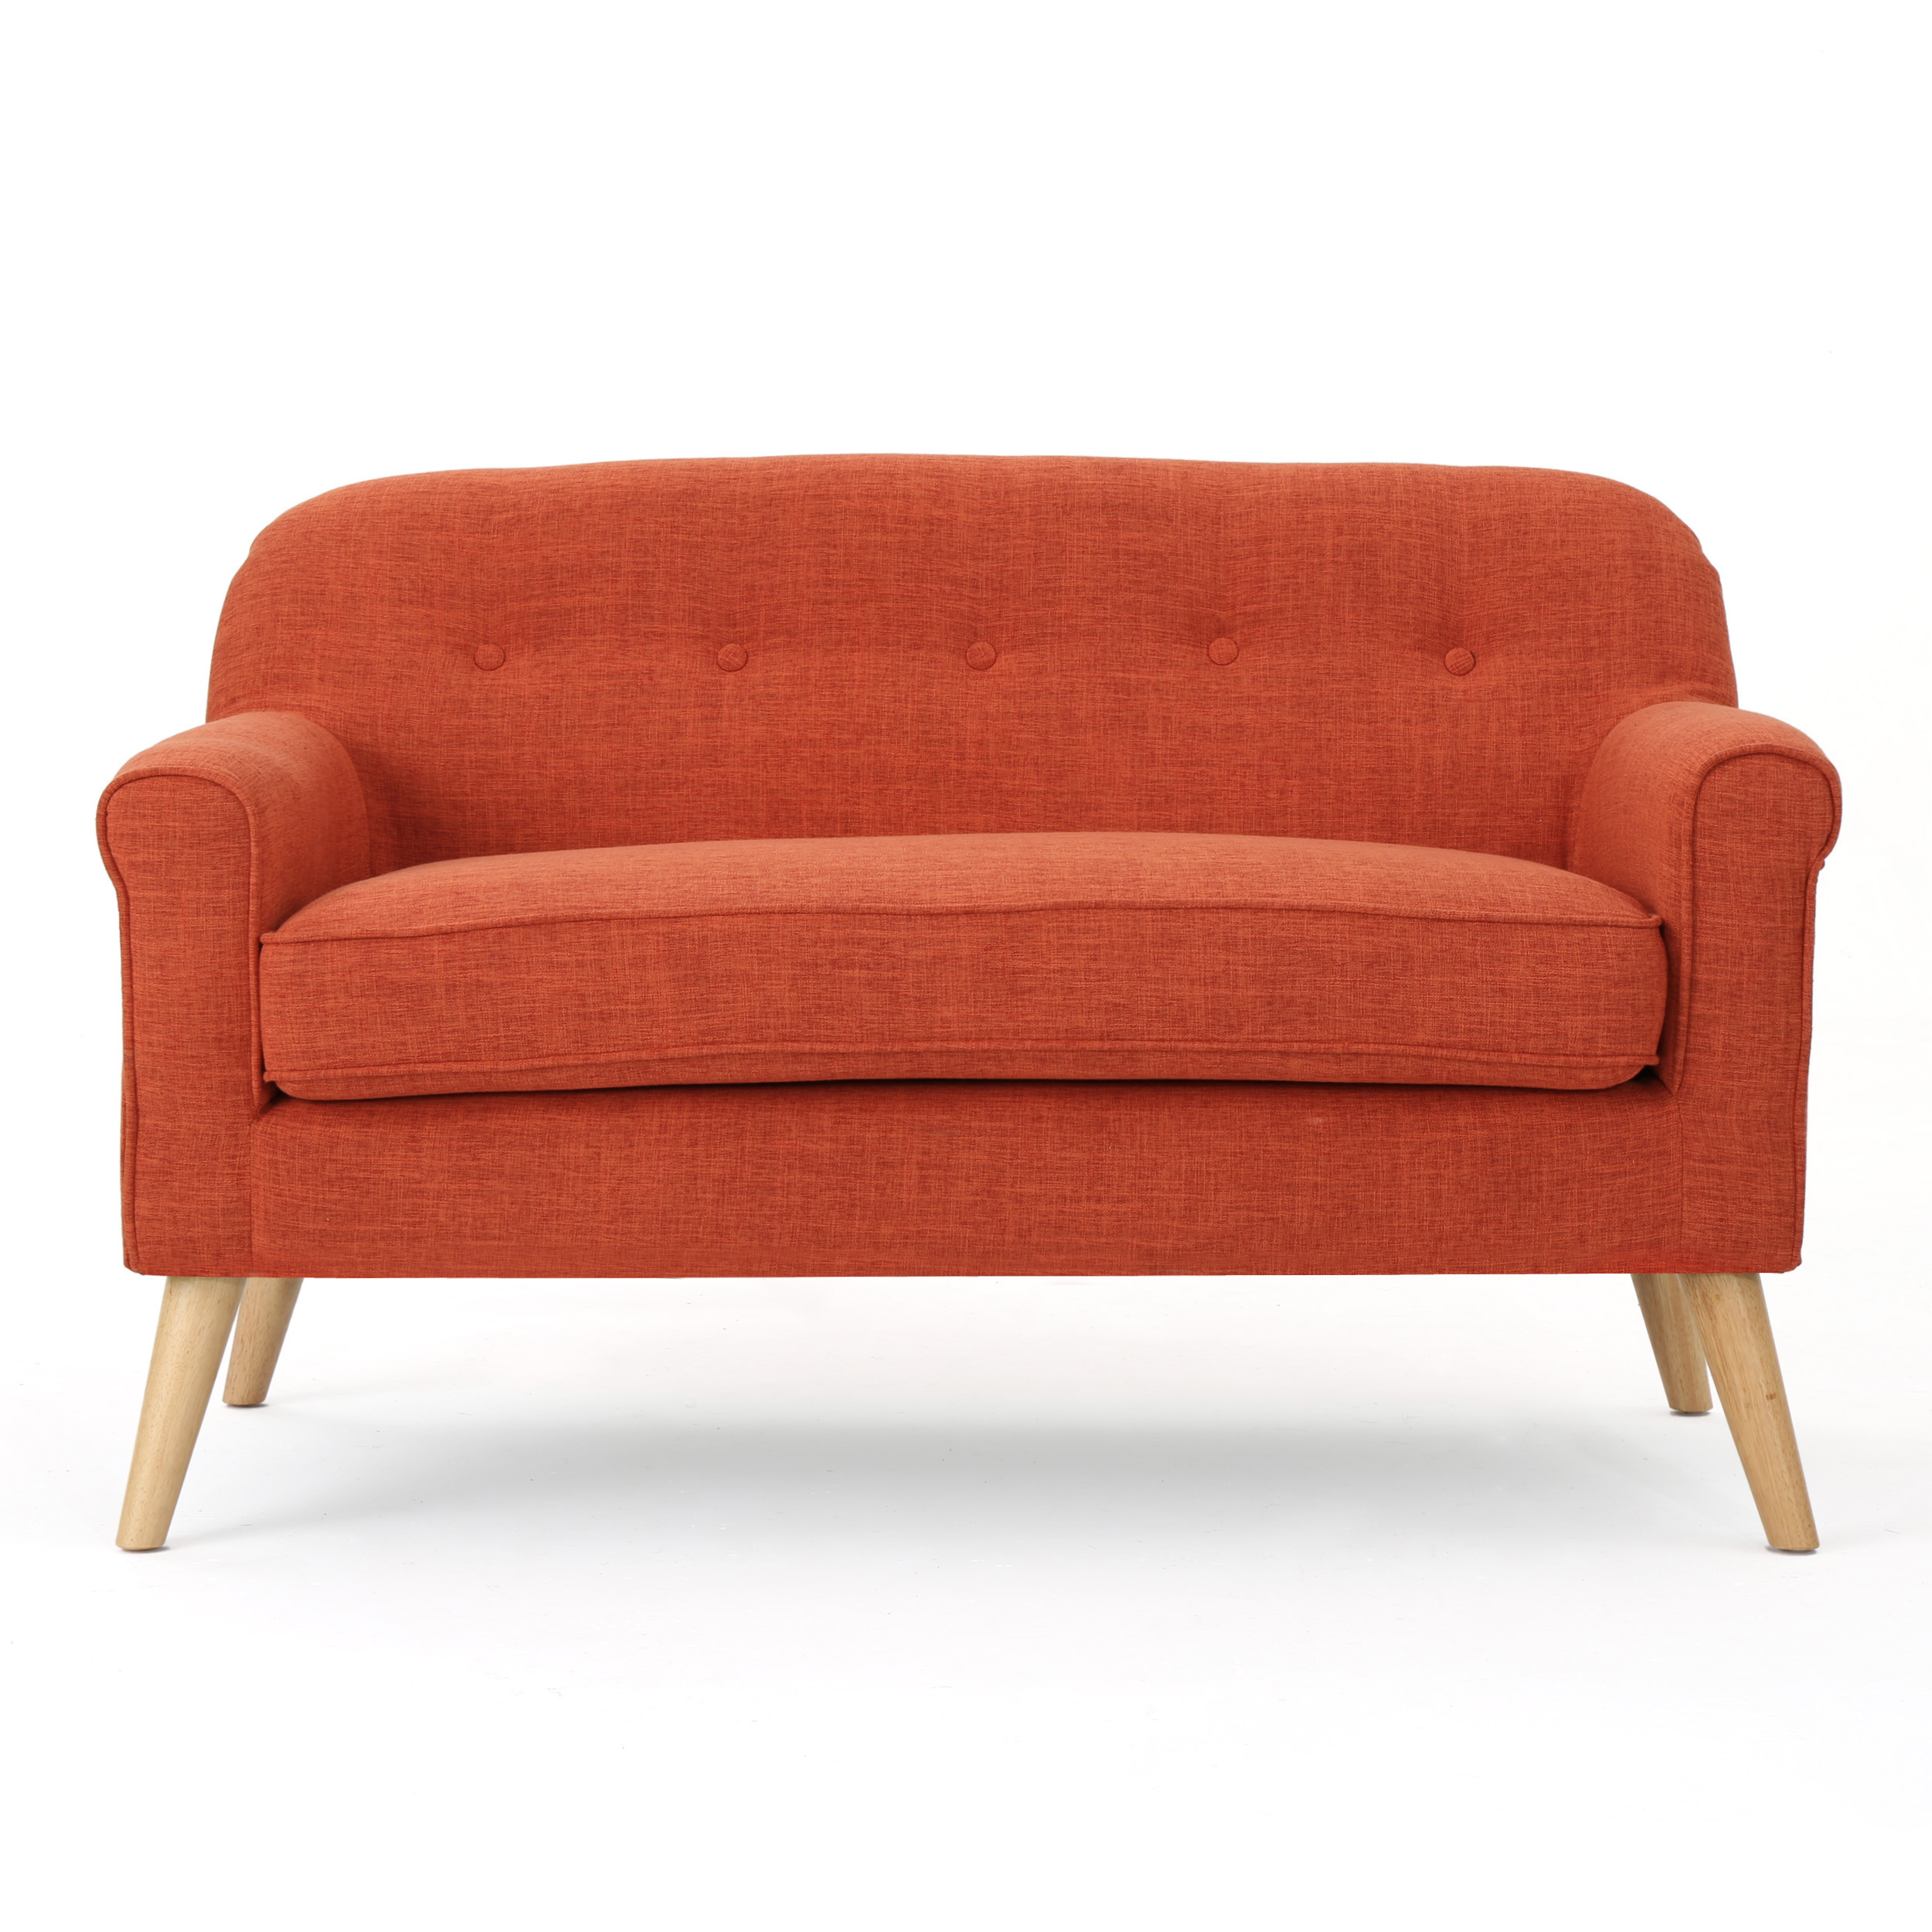 Mia Mid Century Modern Loveseat, Muted Orange